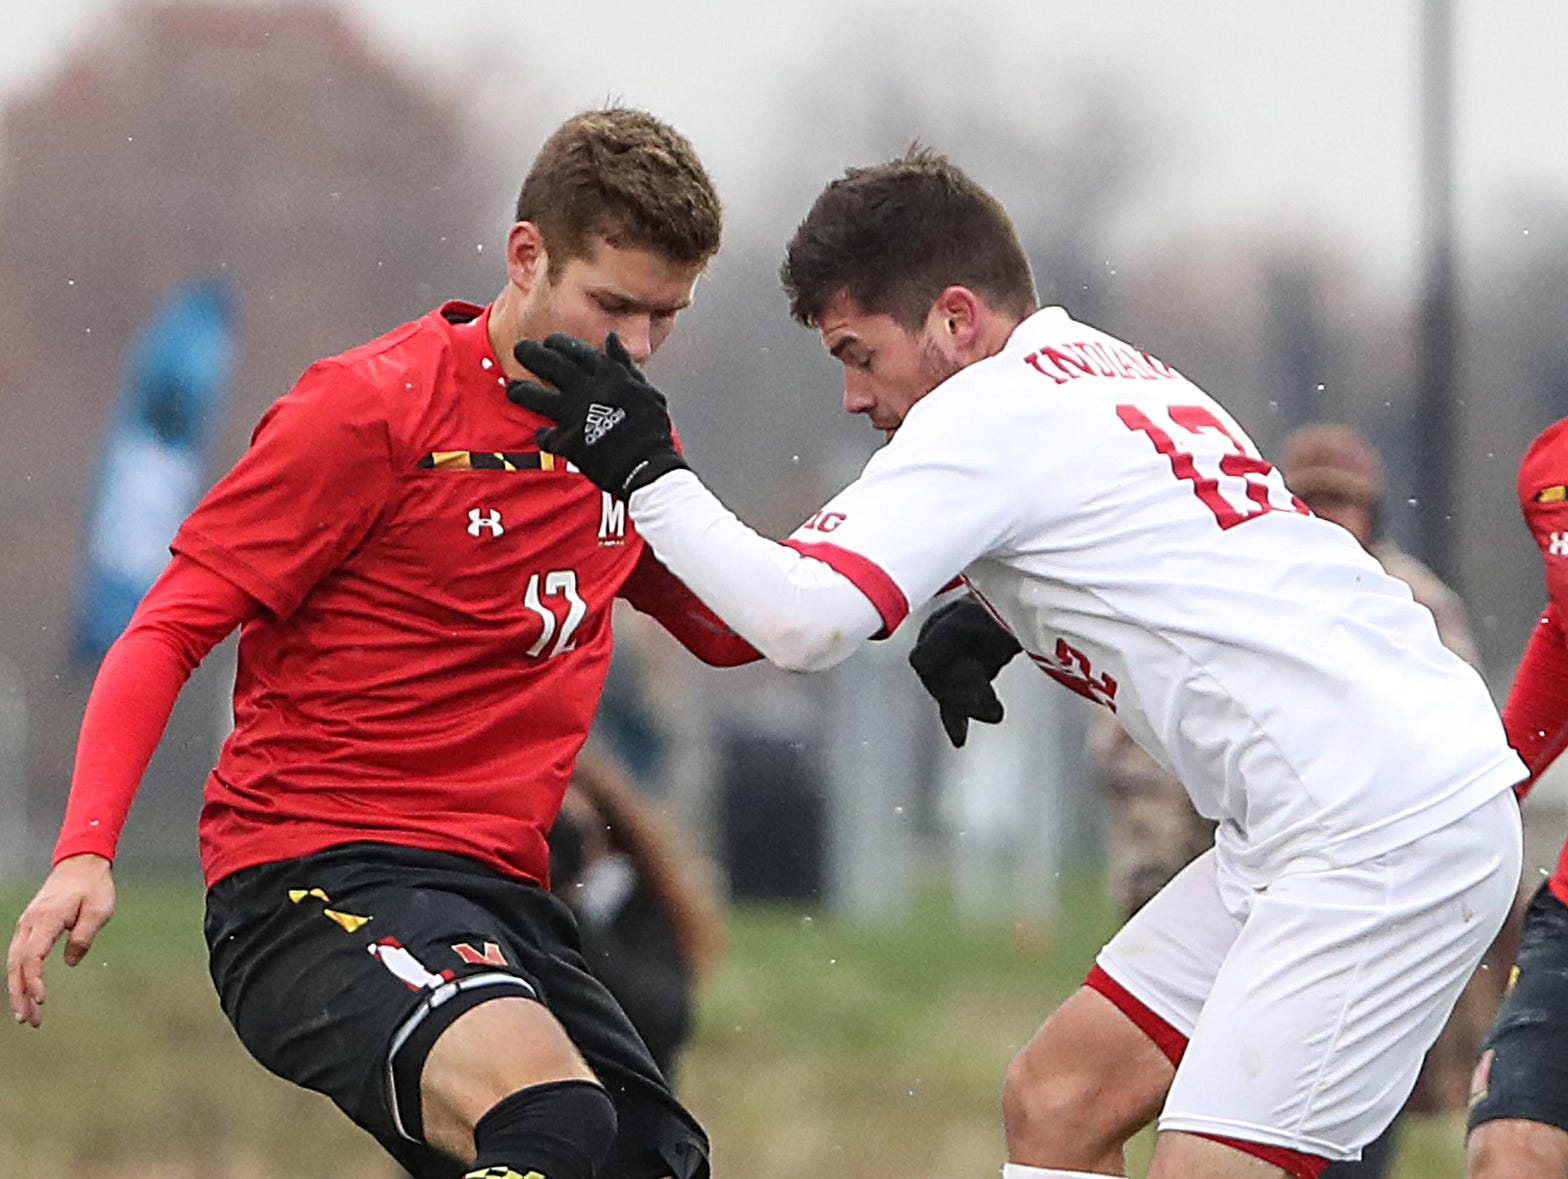 Maryland Terrapins defender Brett St. Martin (12) and Maryland Terrapins defender Brett St. Martin (12) fight for the ball during overtime periods in Big Ten semifinals at Grand Park in Westfield, Ind., Friday, Nov. 9, 2018. Indiana and Maryland tied 1-1, with the Hoosiers advancing in penalty kicks, 4-3.